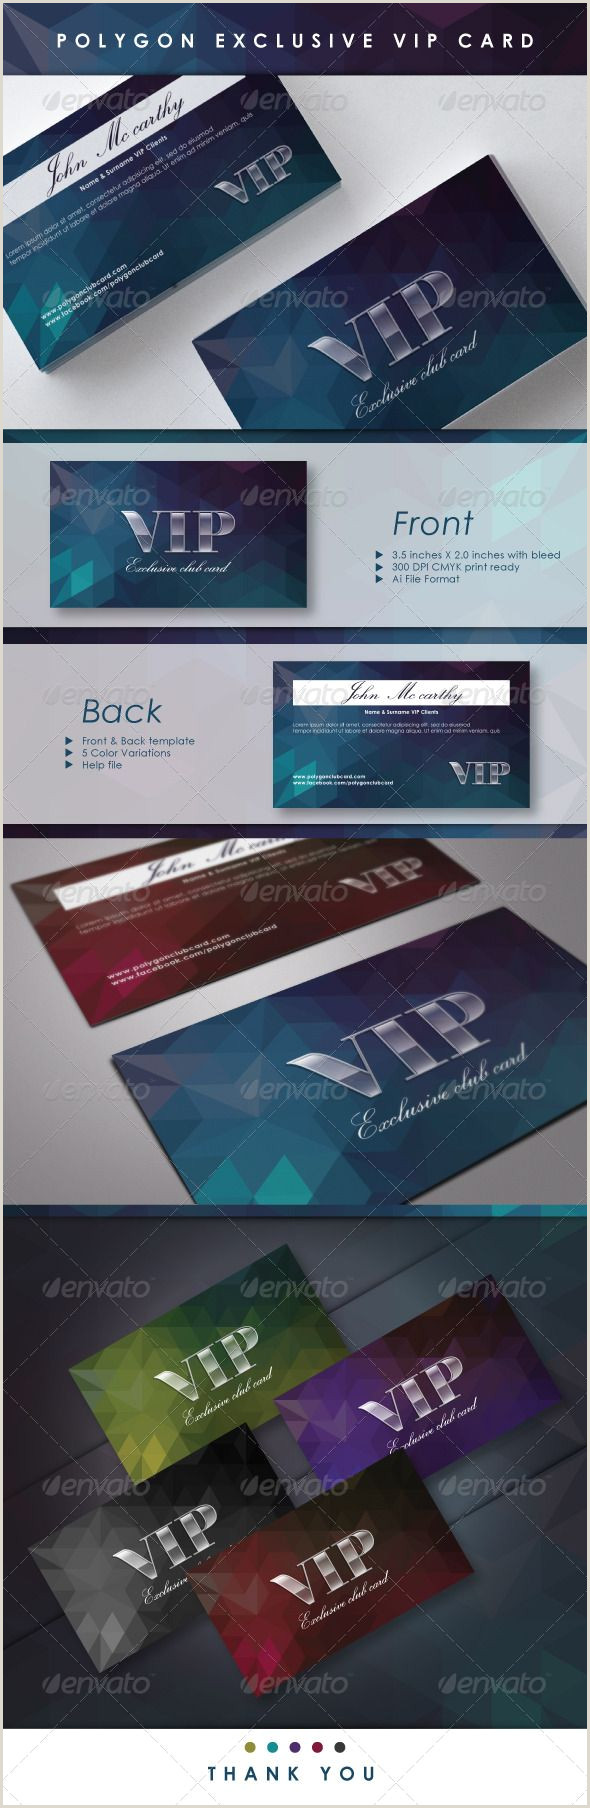 Best Business Cards For Car Salesman Polygon Exclusive Vip Card